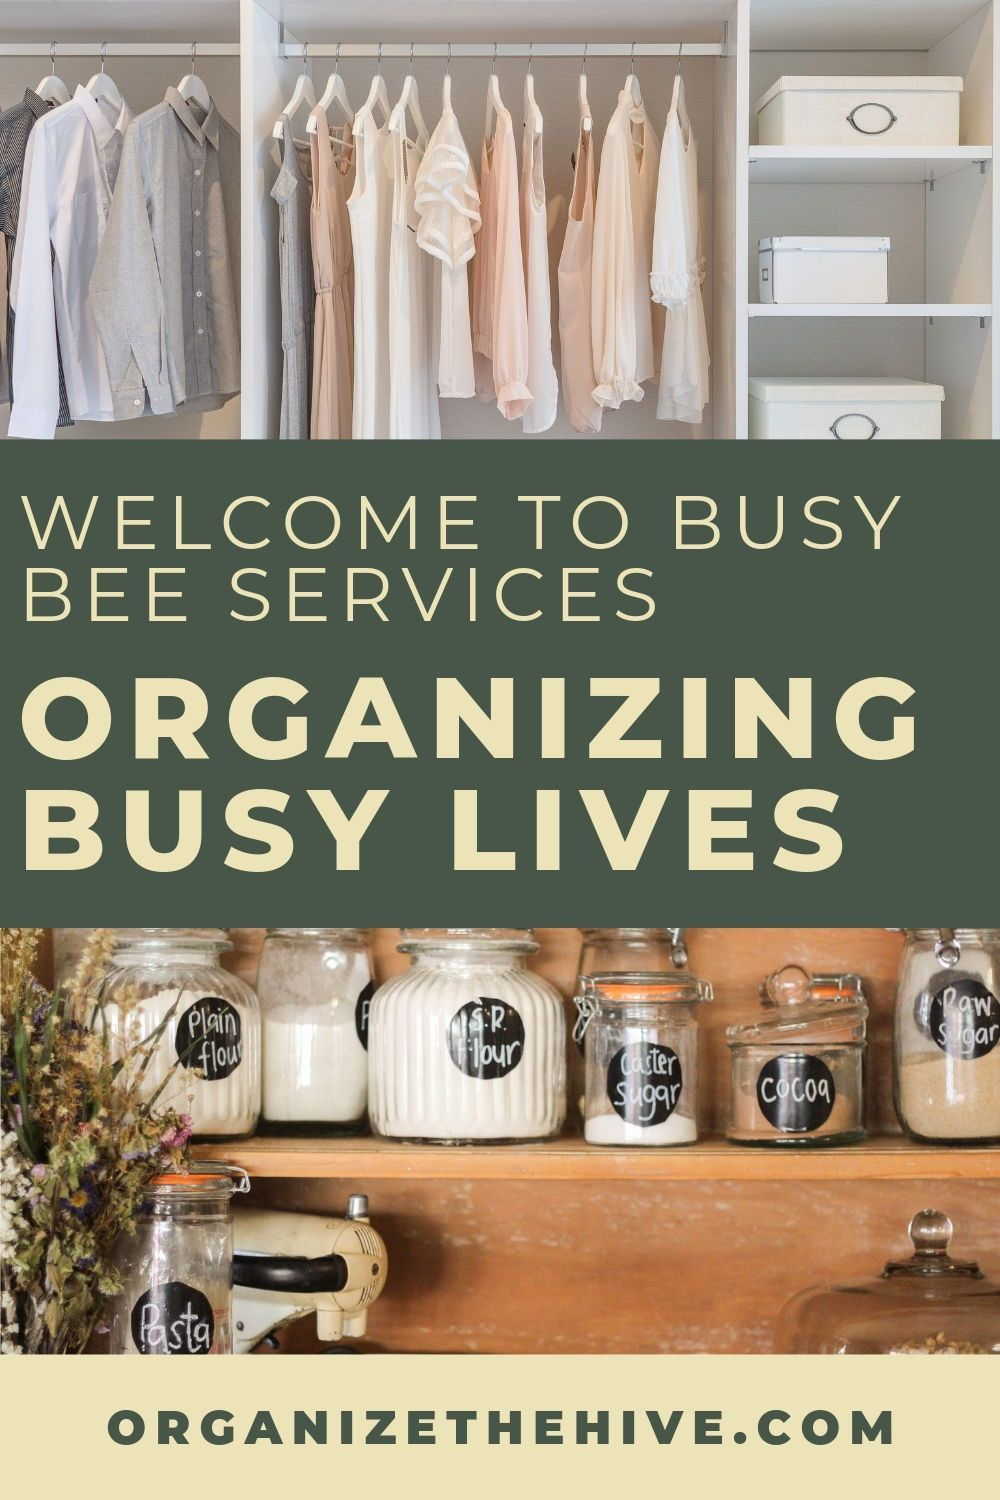 Give your house a makeover! I love how Busy Bee offers other services apart from just home organization. Their team is here to customize your life organizing solutions to streamline your busy home and schedule. Get on your way to a clutter free home! #organize #professionalorganizer #homeorganization #declutter #homemakeover #organizemedicinecabinets Give your house a makeover! I love how Busy Bee offers other services apart from just home organization. Their team is here to customize your life #organizemedicinecabinets